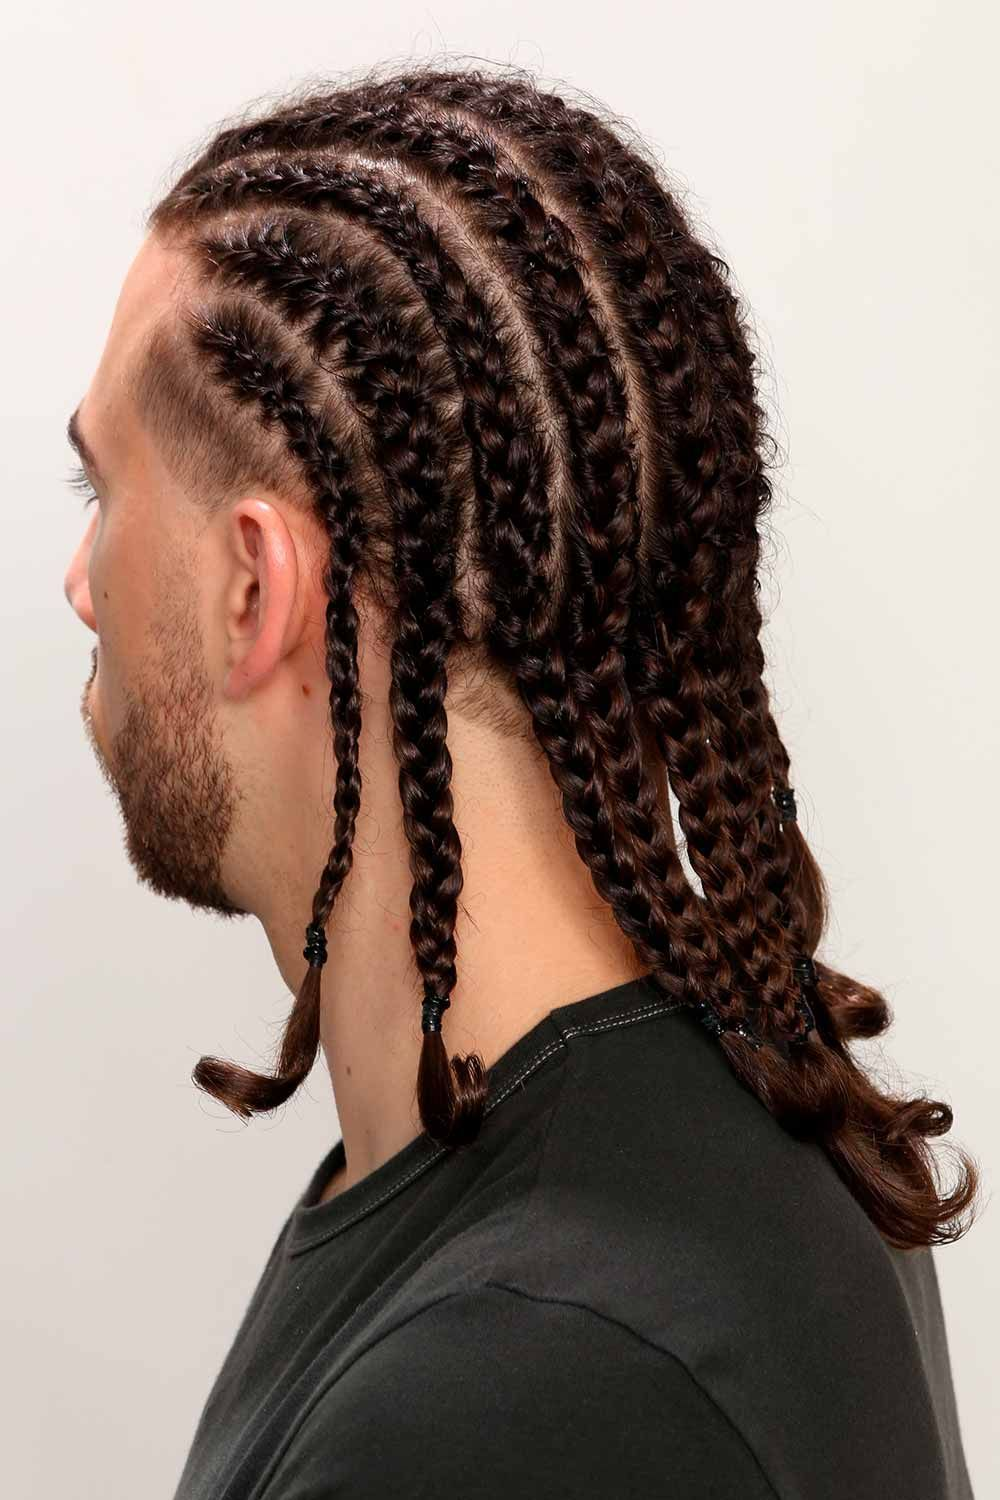 Braids For Men. Discover Why Man Braid Hairstyles Are So Popular Today in 2020   Long hair ...